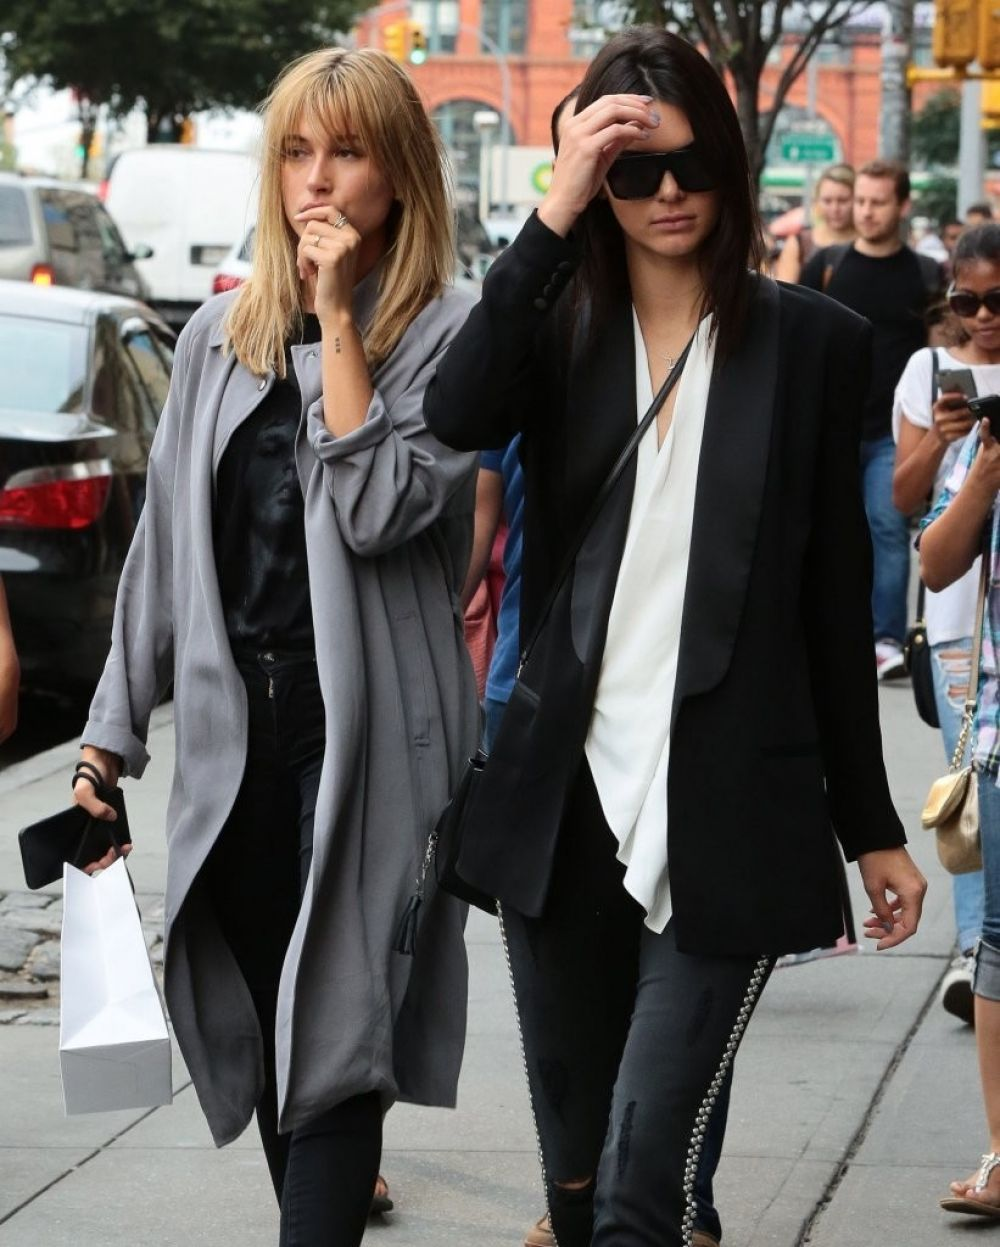 KENDALL JENNER and HAILEY BALDWIN Out and About in New York 08/30/2015